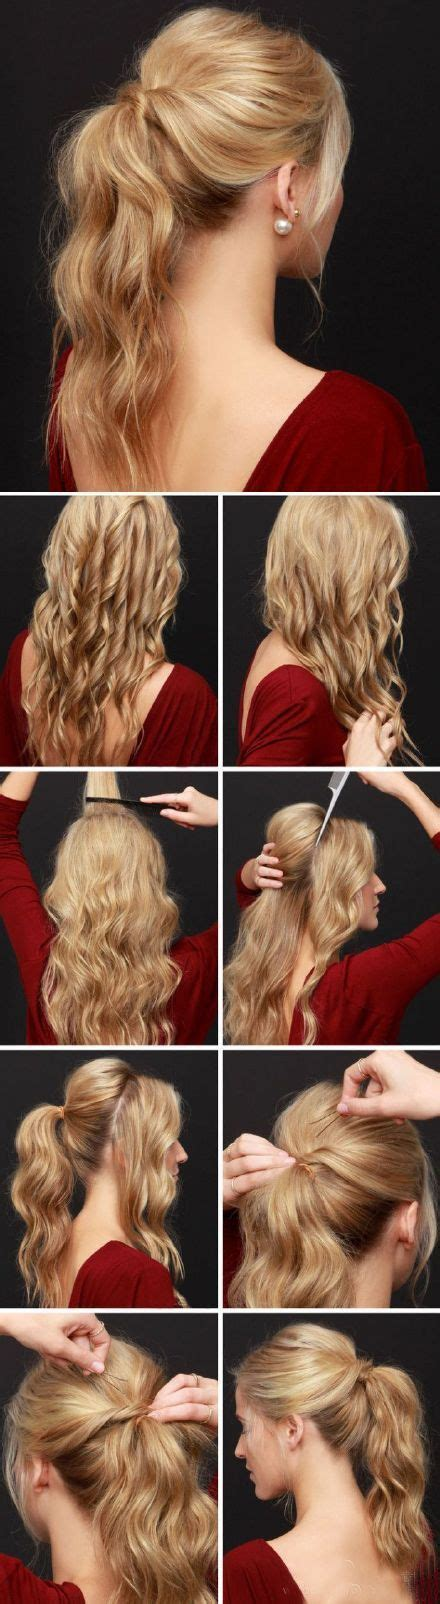 Images Of Hair Binding Curl Style | romantic long curly hair ponytail style hair binding